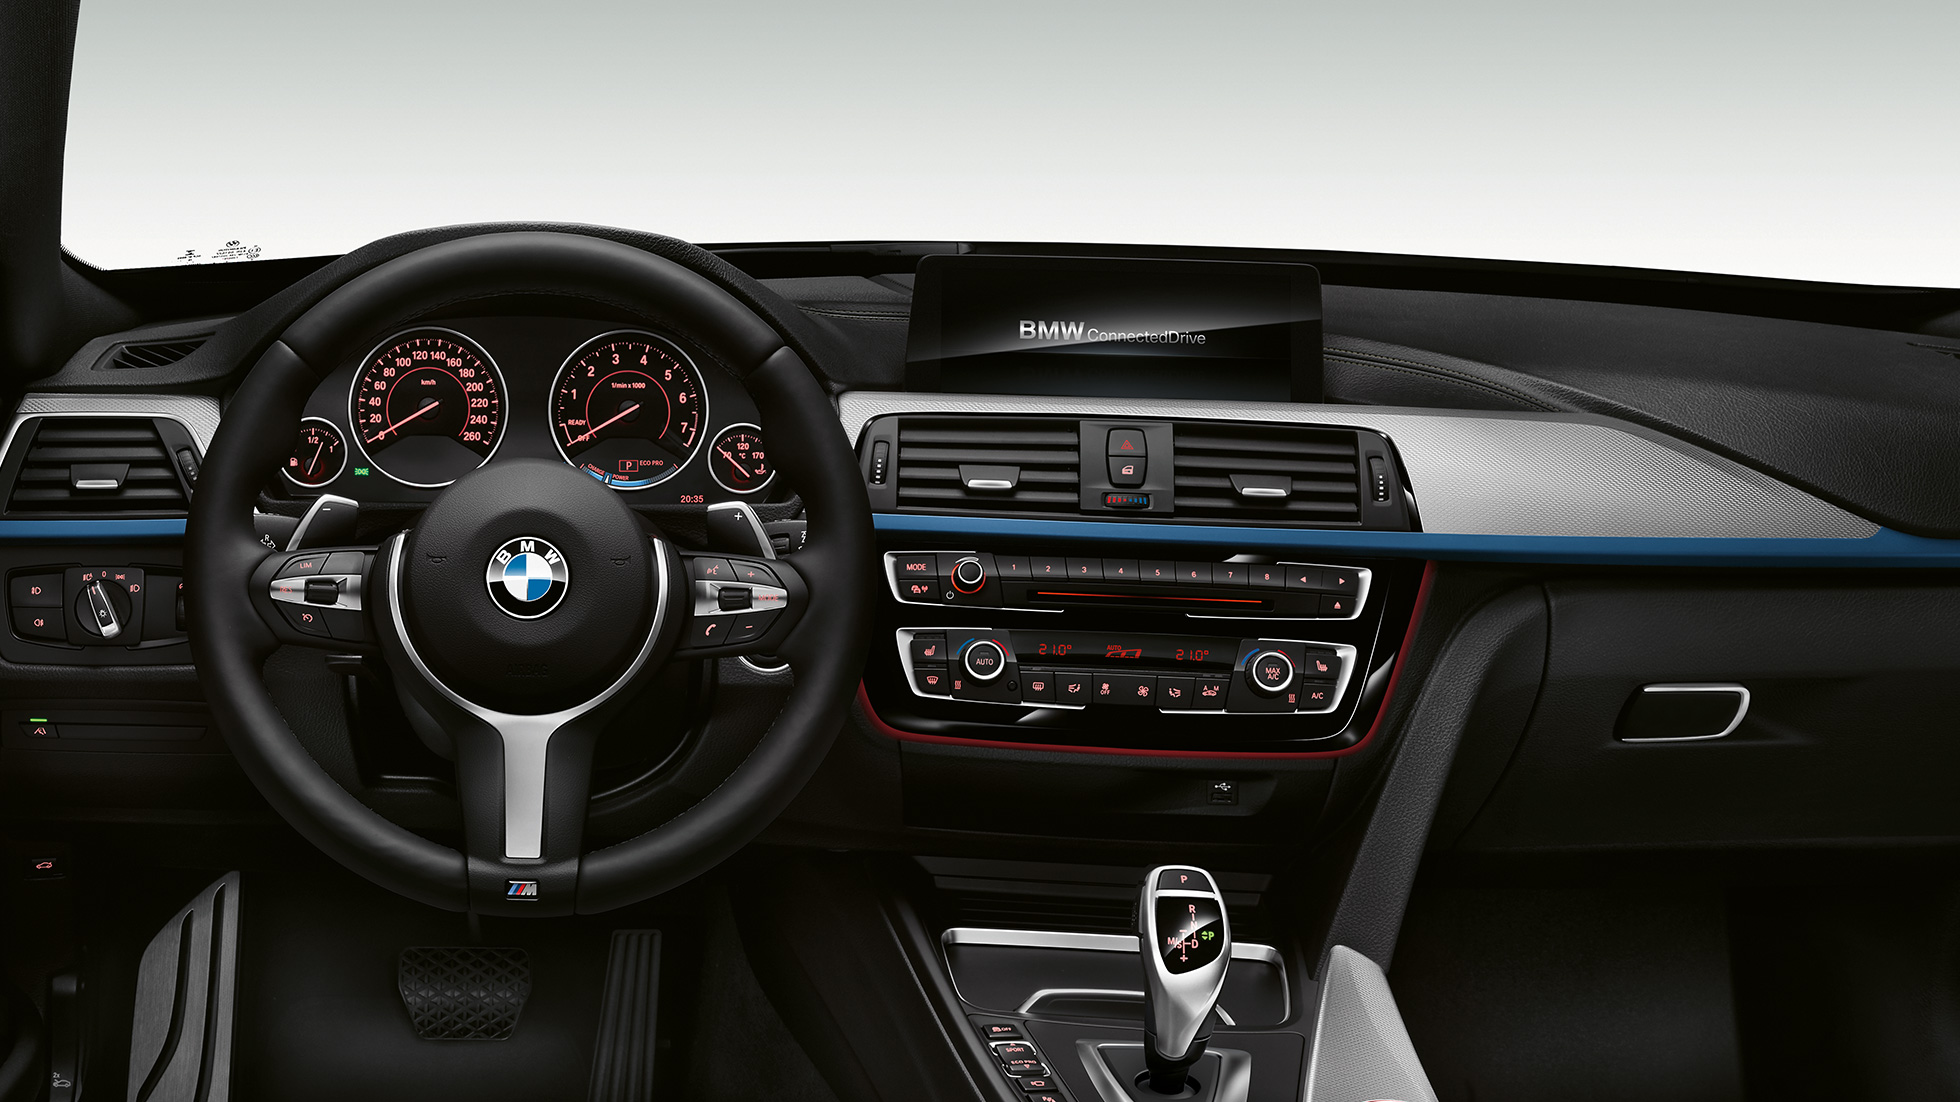 Bmw 3 Series Gran Turismo Details And Information Bmw Com Mt